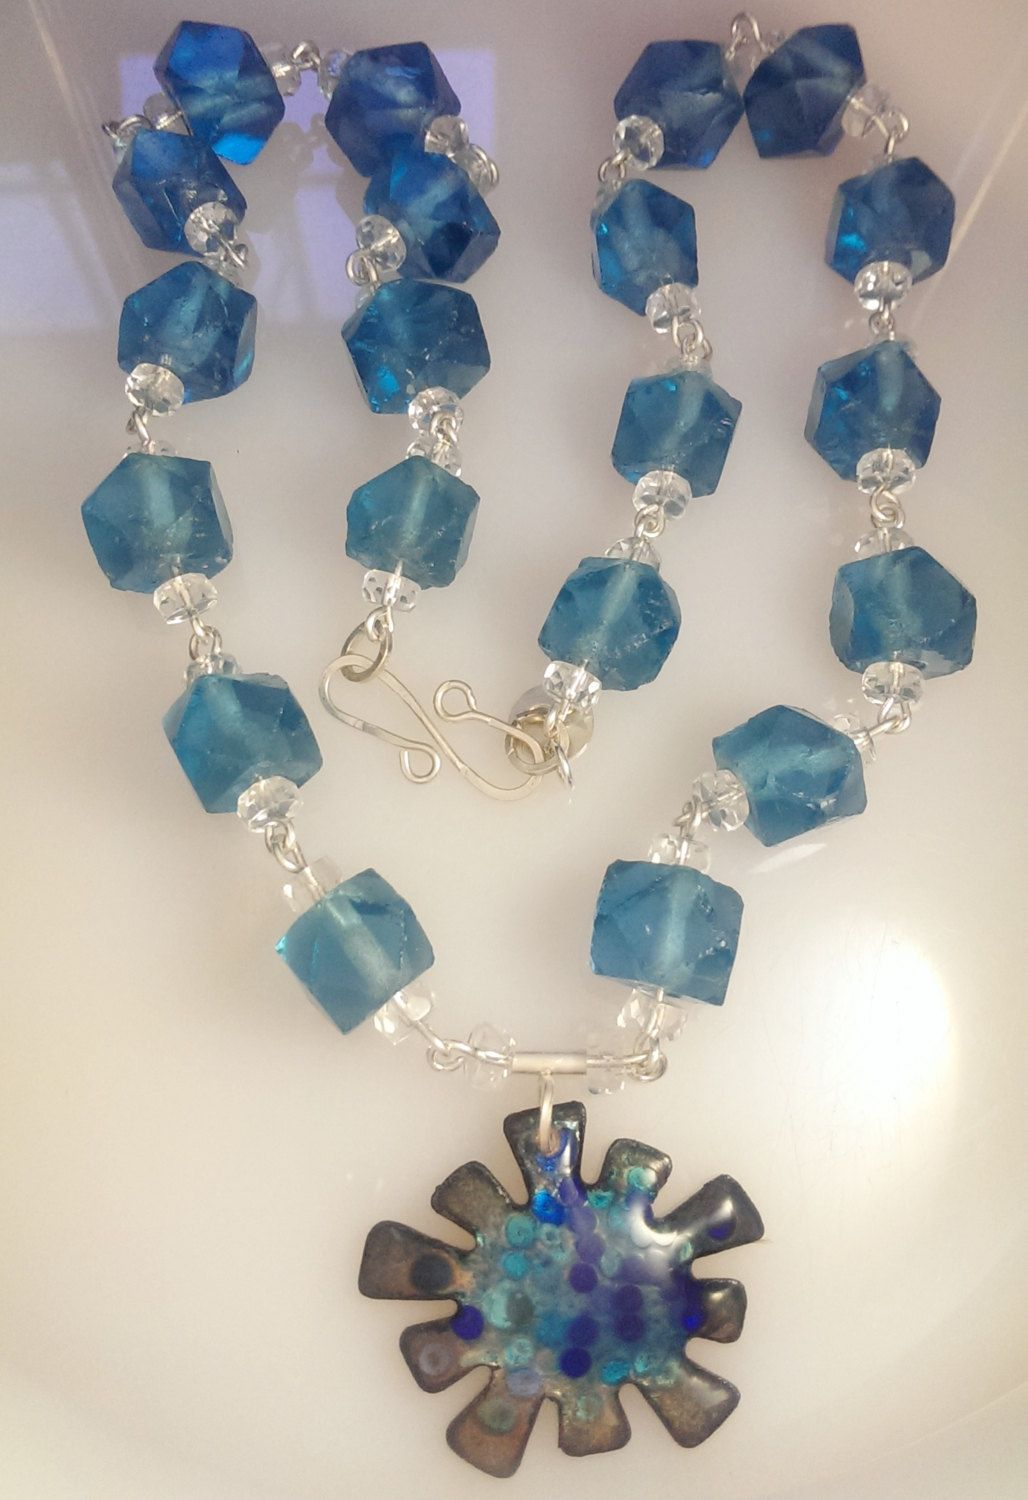 Crystal Blue Necklace - Vintage English Cut Glass and  Enamel focal by SpurwinkRiverArts on Etsy